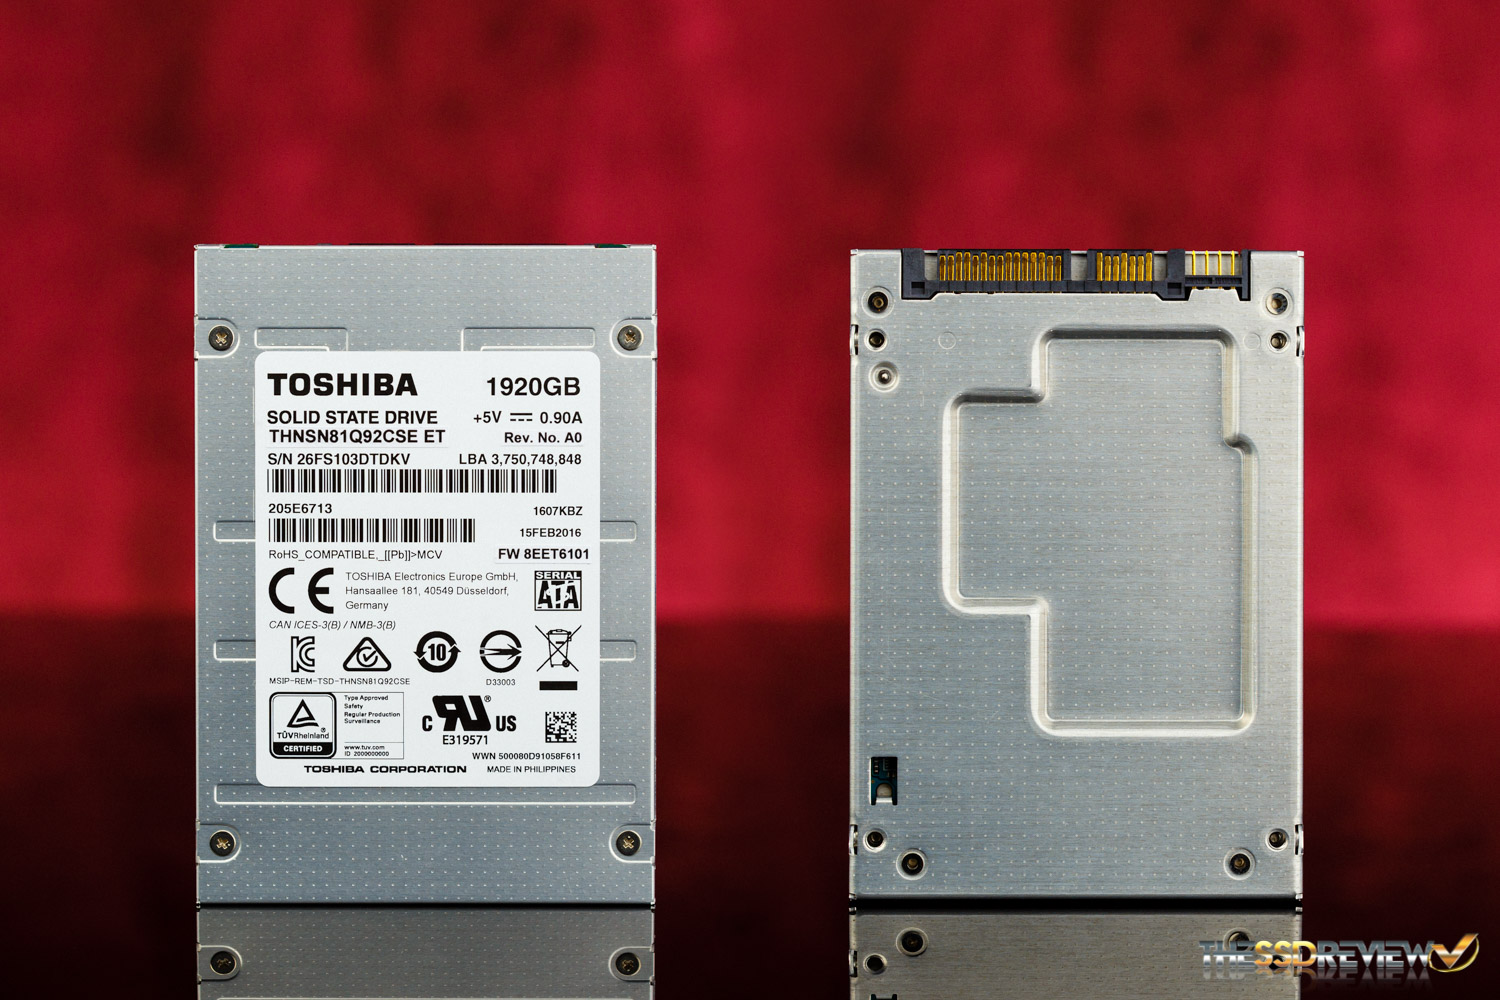 1TB 2.5 Laptop SSHD Solid State Hybrid Drive for Toshiba Tecra R940 R940 R940 R940 PT439U-028005 PT439U-059058G1 PT439C-03902S PT439U-02T005